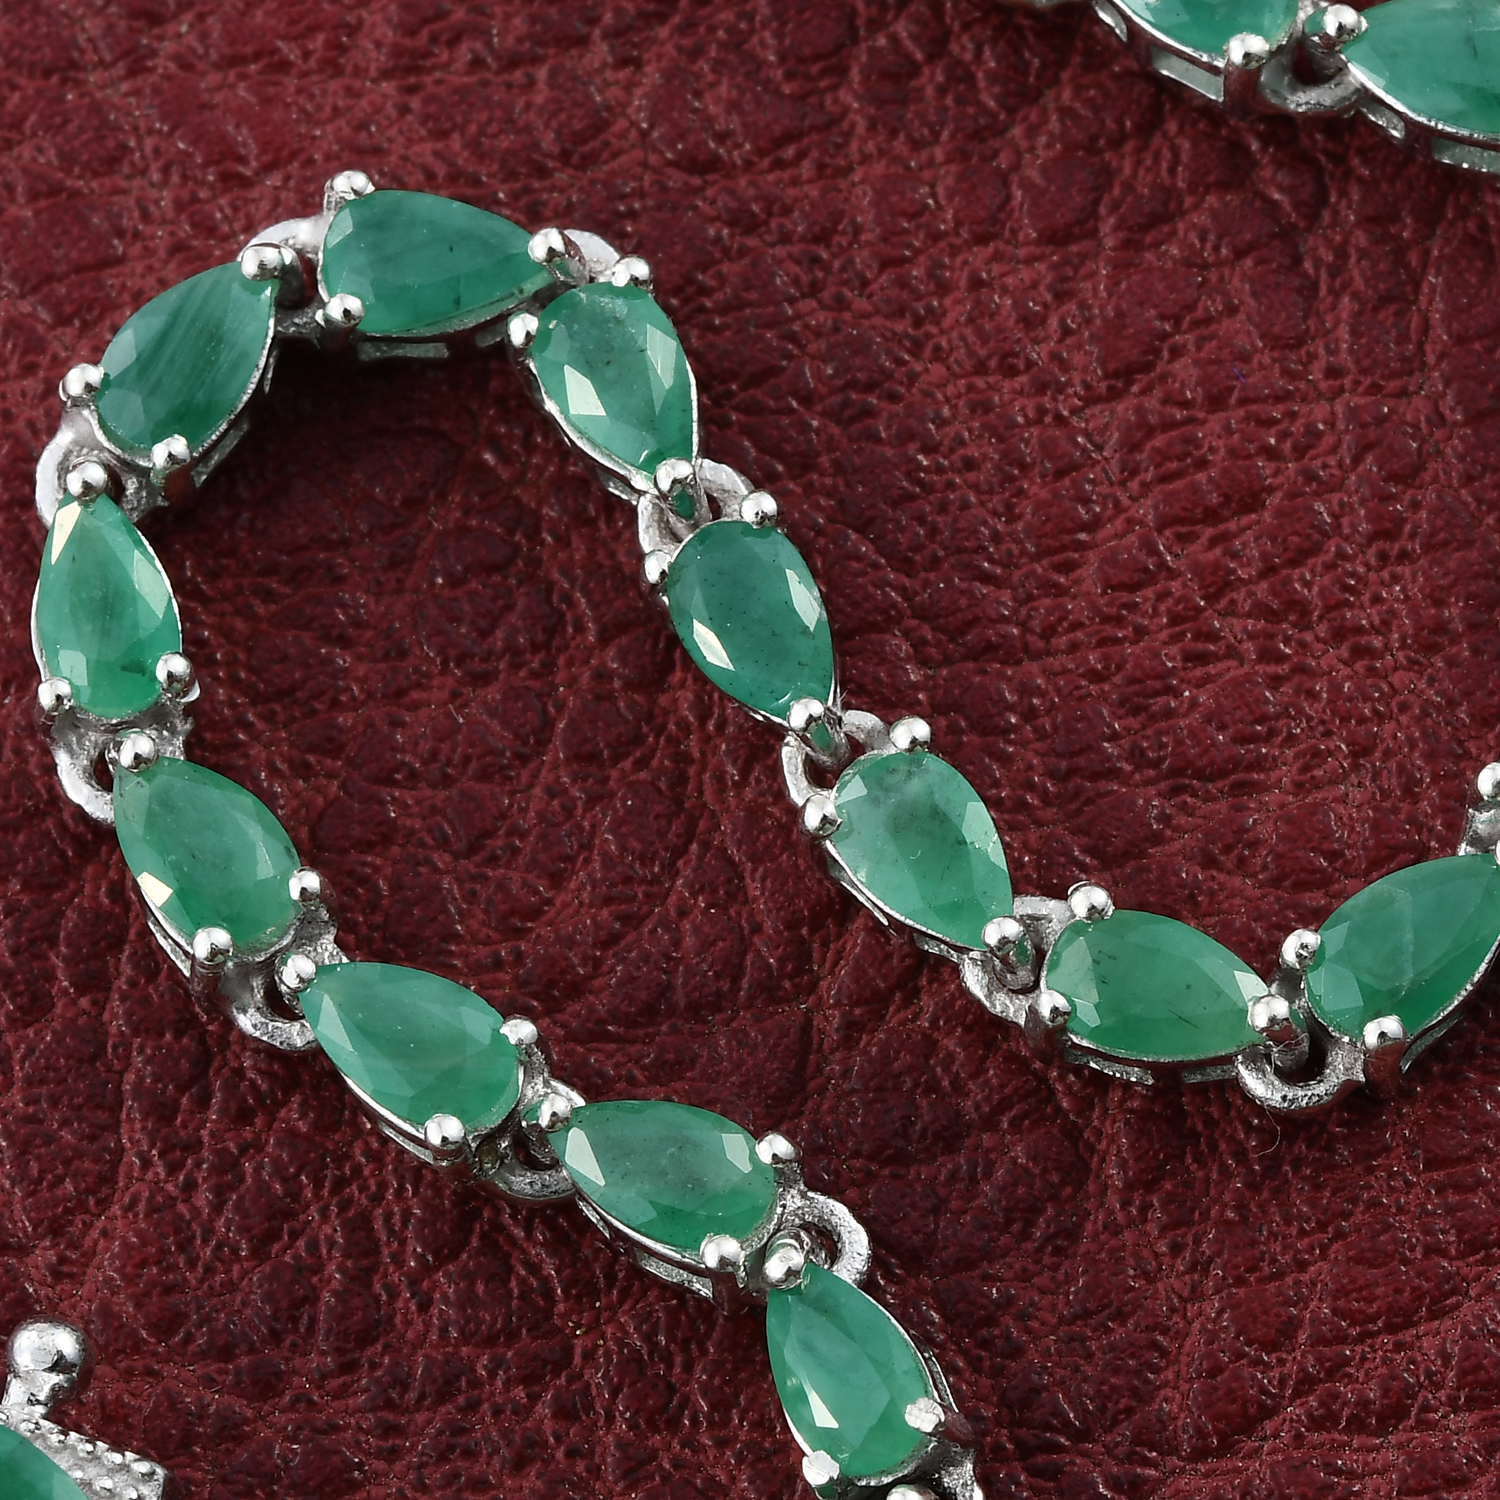 Sokoto emerald line bracelet on red background.